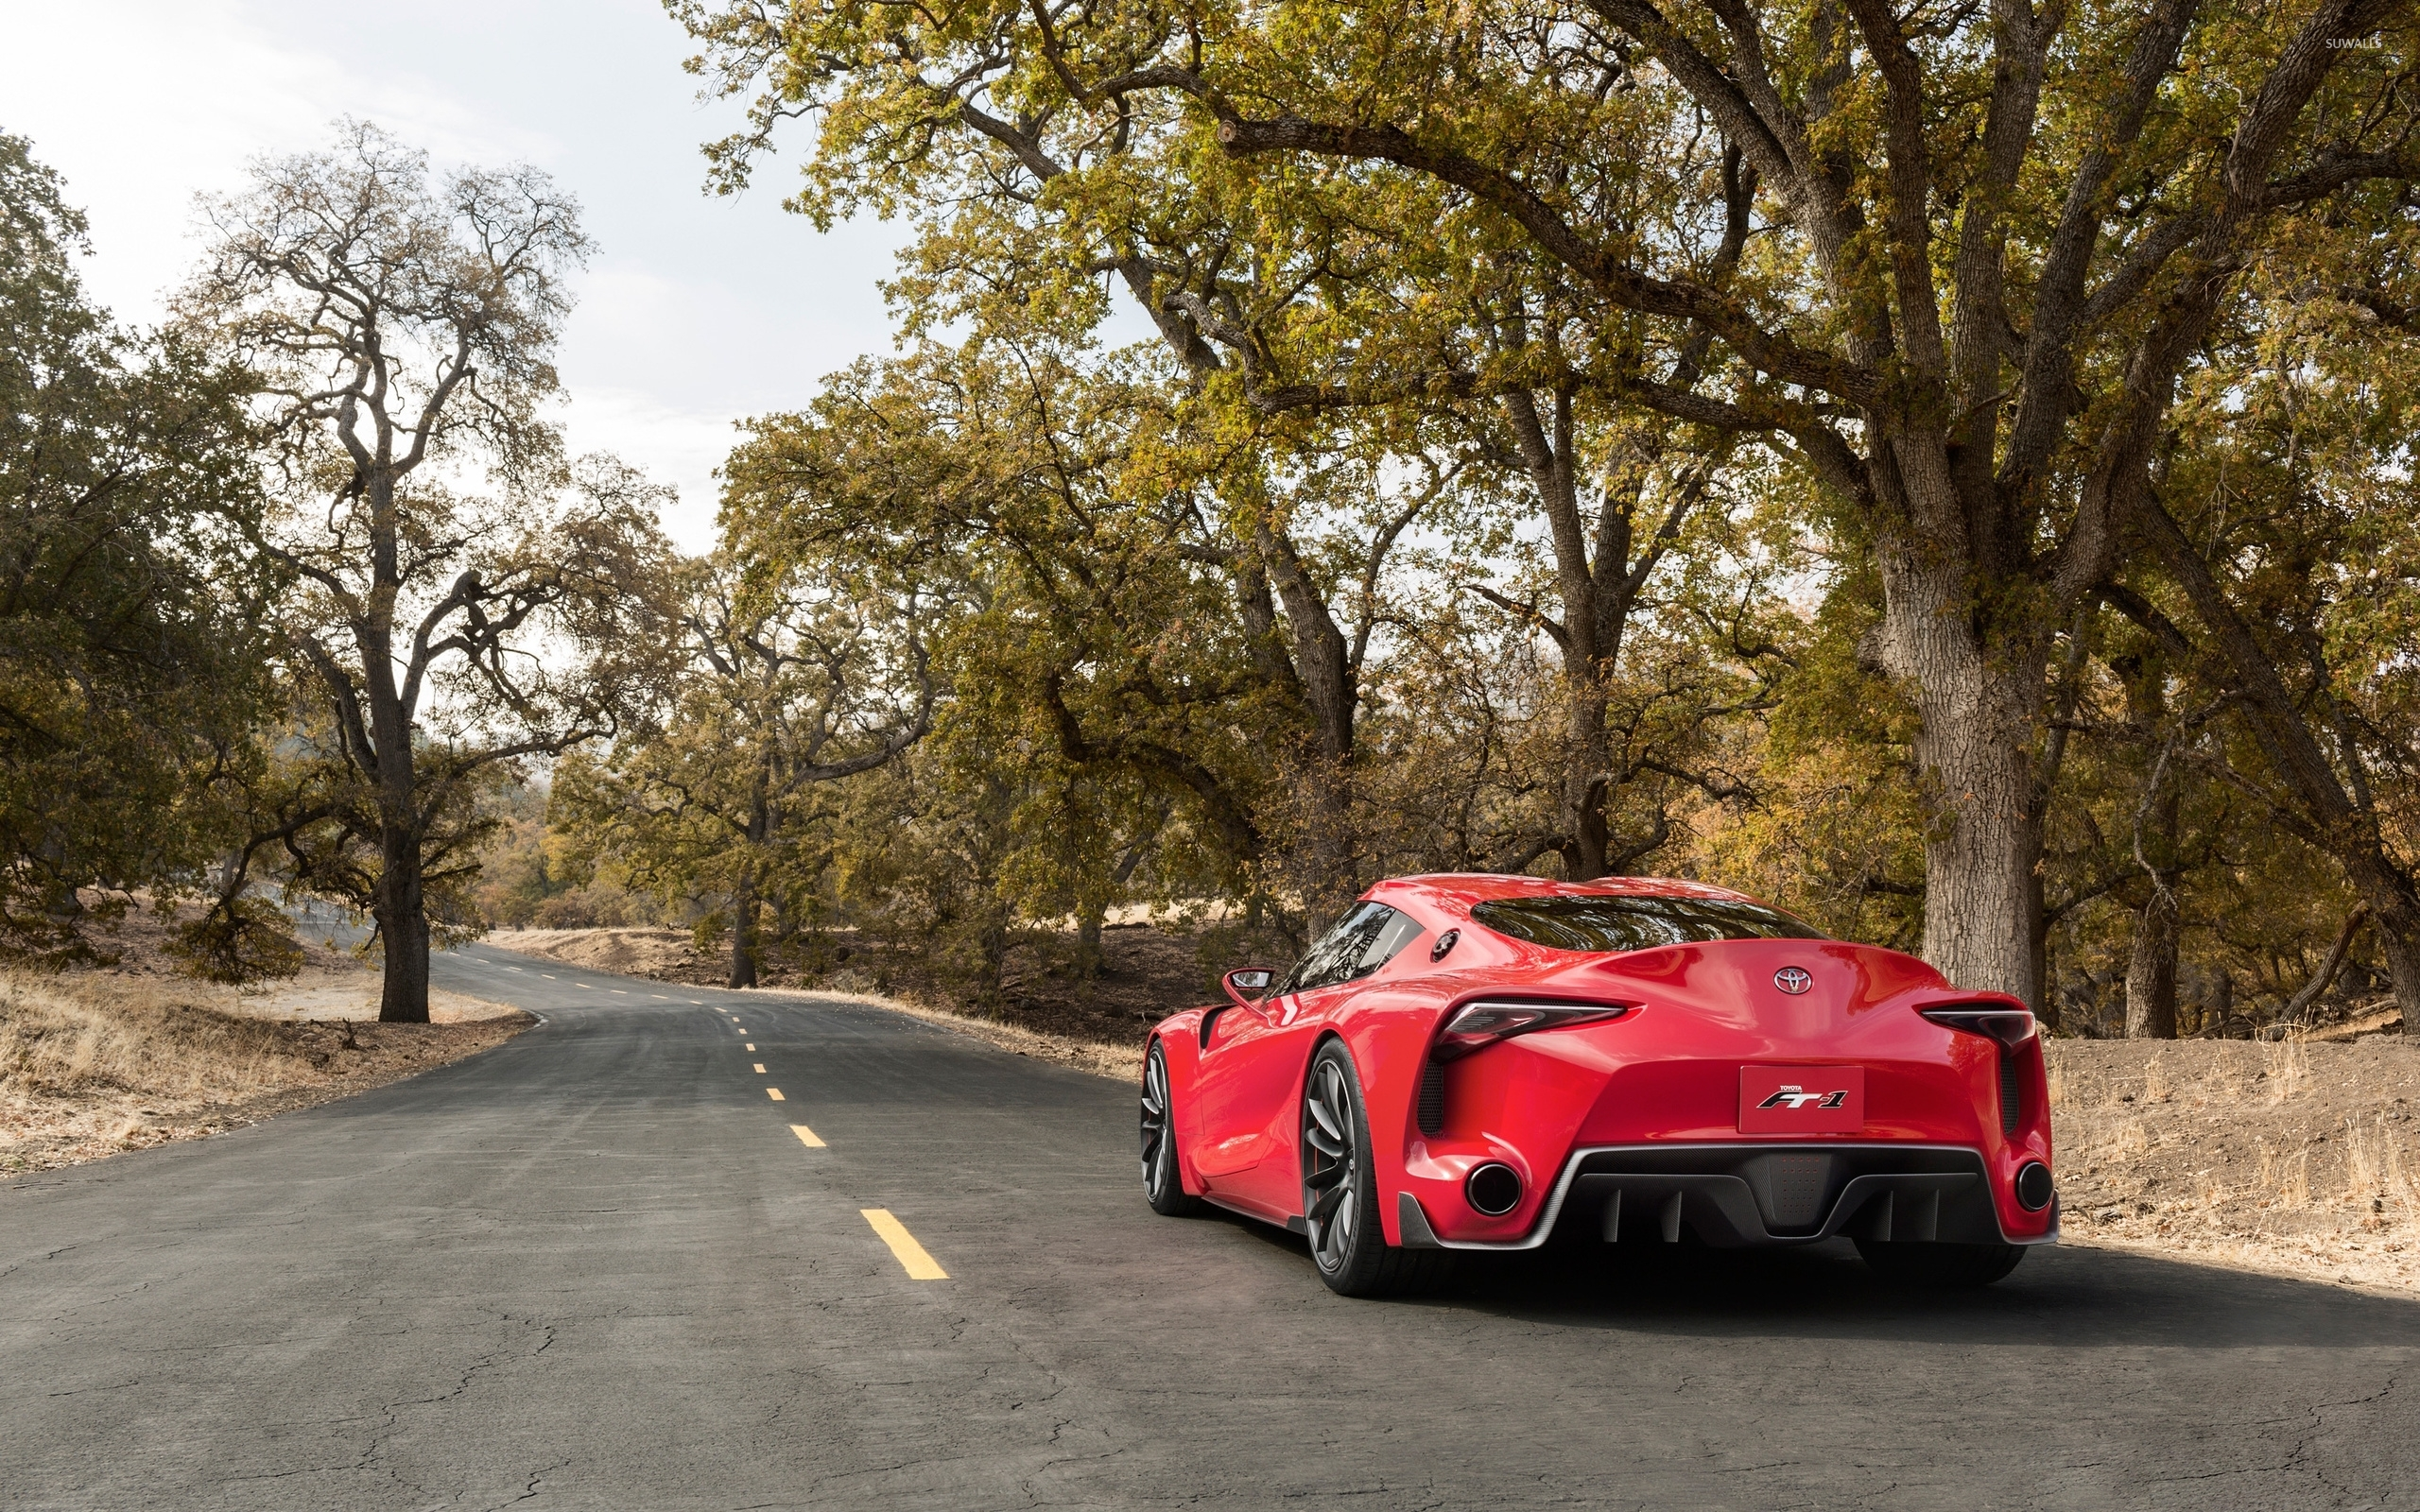 Toyota FT 1 Concept Wallpaper 2560x1600 Jpg